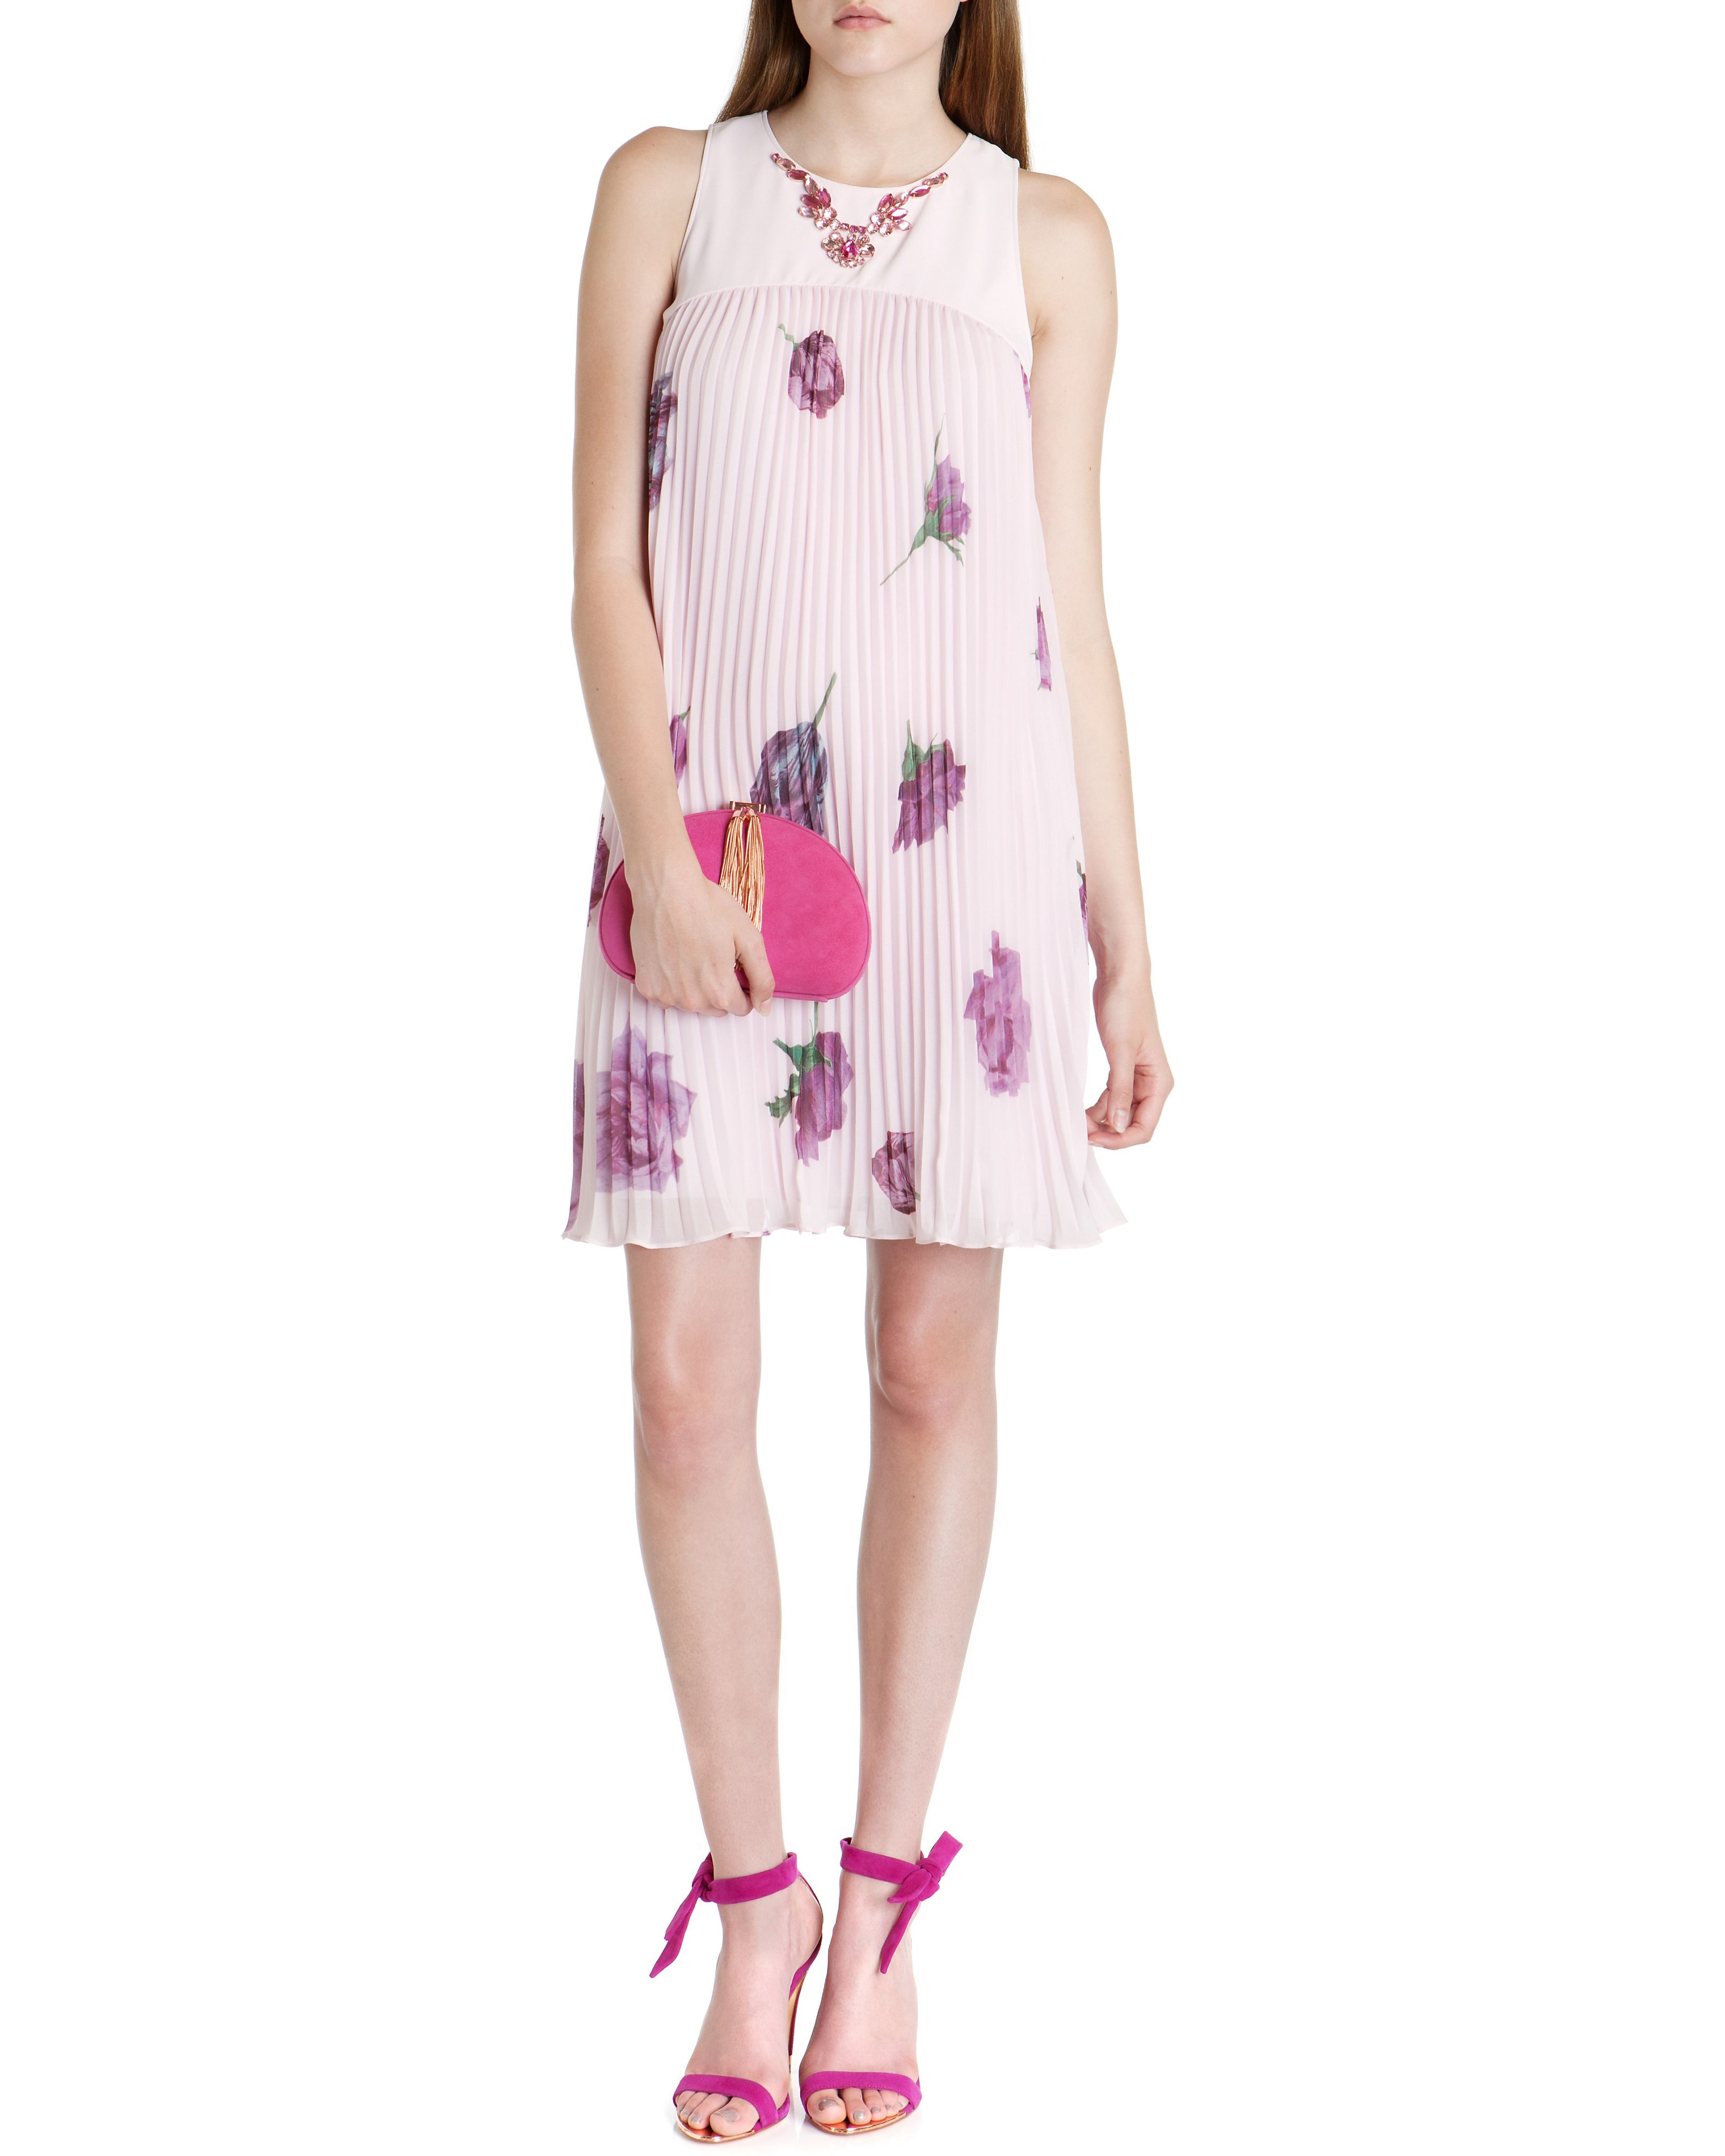 Enika tulip print skirt dress